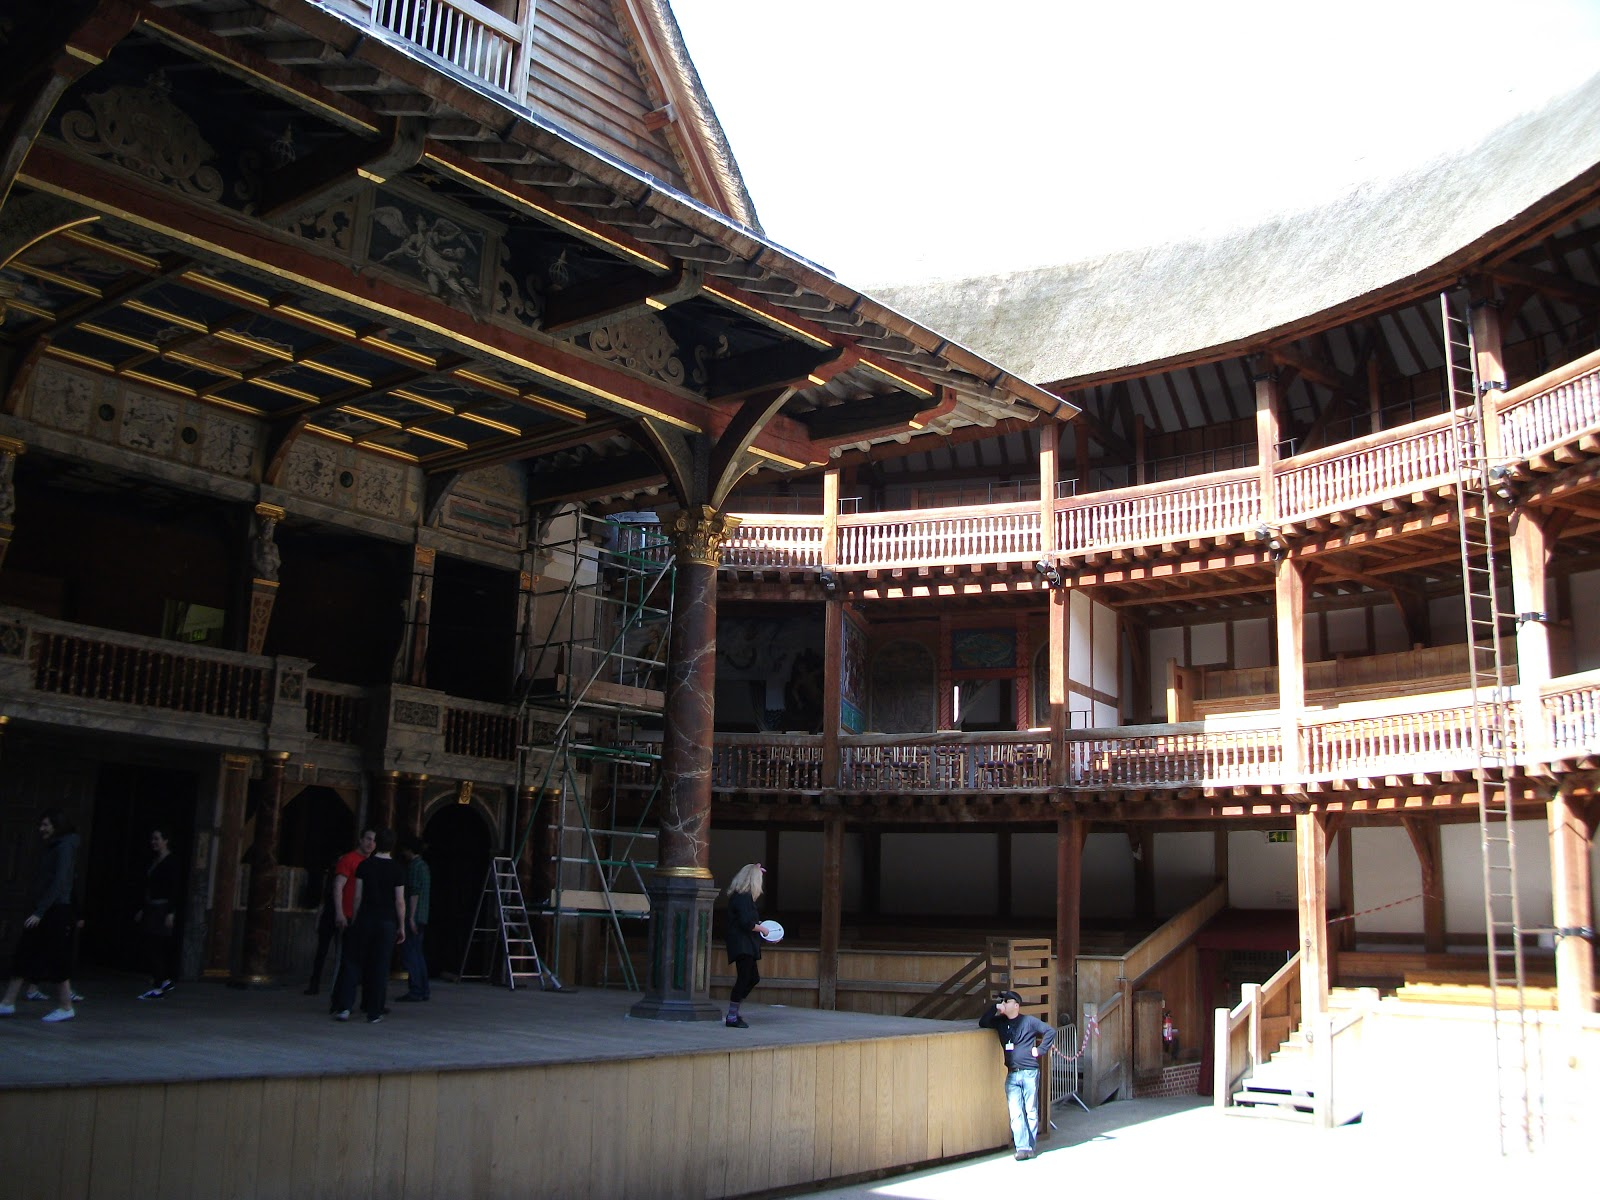 the globe theatre essay The globe theatre in london , where william shakespeare's most famous plays premiered hamlet, othello, king lear, macbeth, and twelfth night, was built in 1599 in southwark on the south bank of london's river thames by richard burbage it was co-owned by shakespeare, with a share of 125% the.